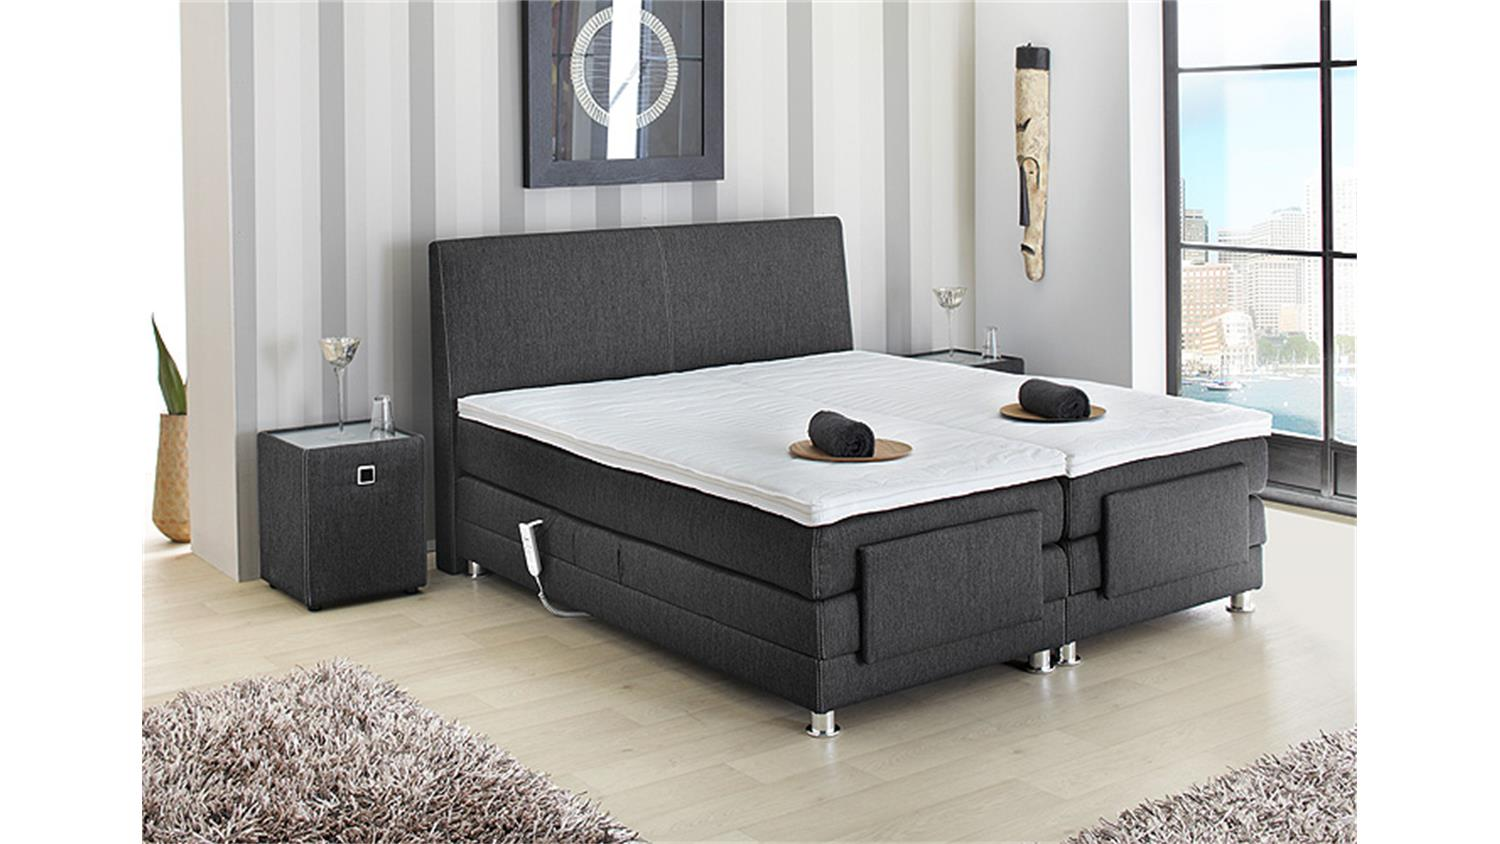 boxspringbett mit topper boxspringbett blizz mit visco topper m bel schuster ihr. Black Bedroom Furniture Sets. Home Design Ideas